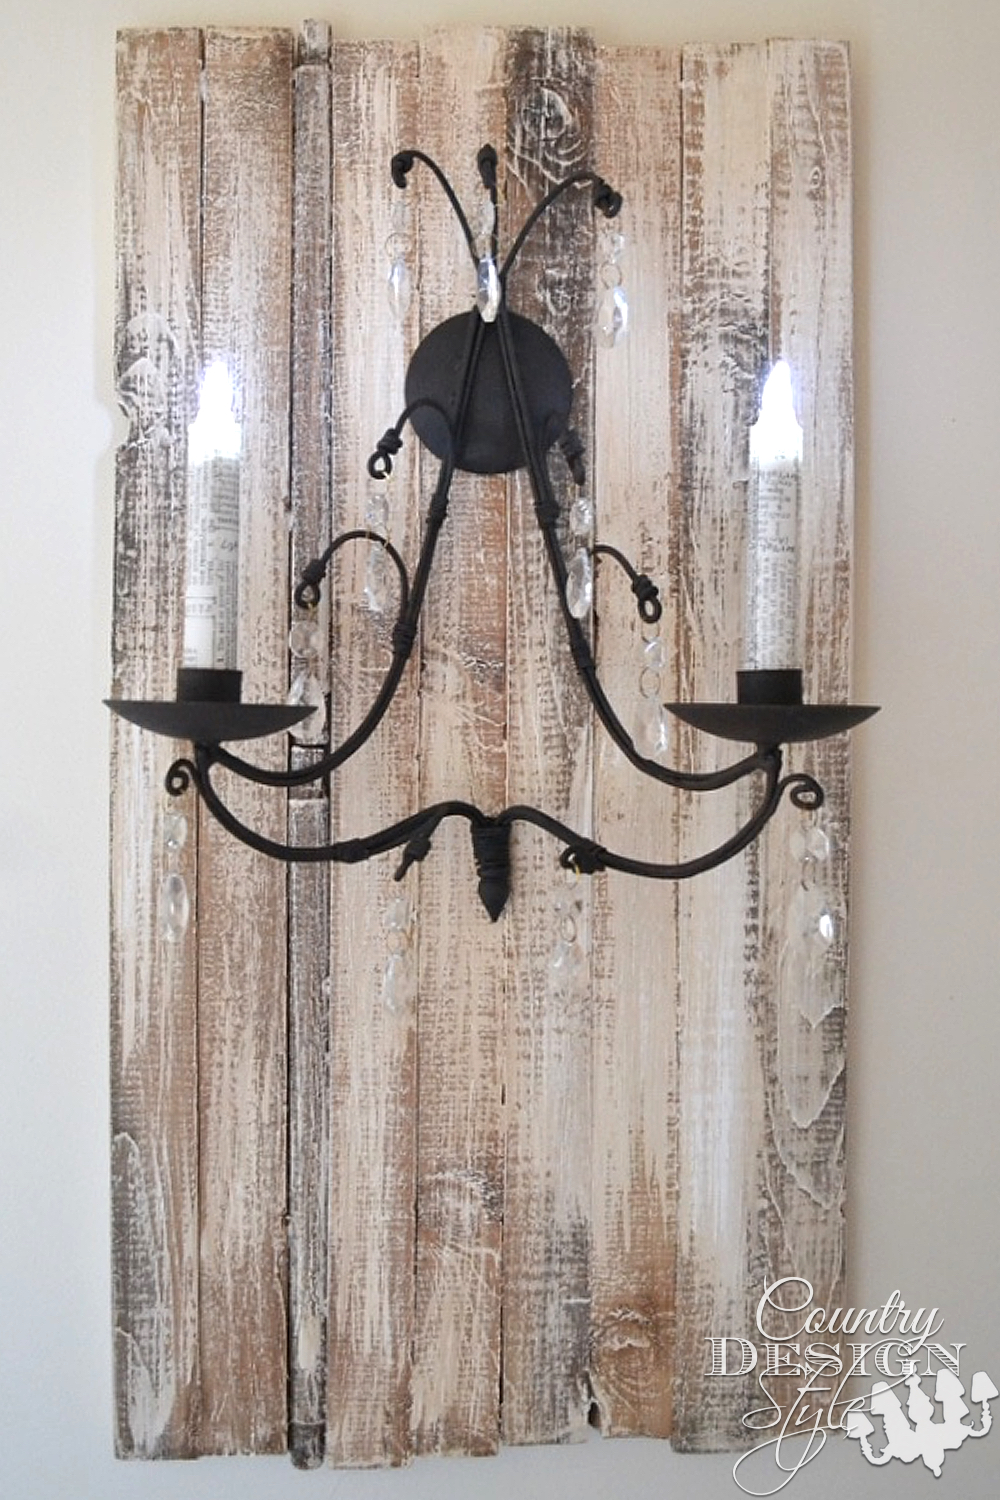 Aged wood planks made into rustic plaque for candle sconce. Country Design Style